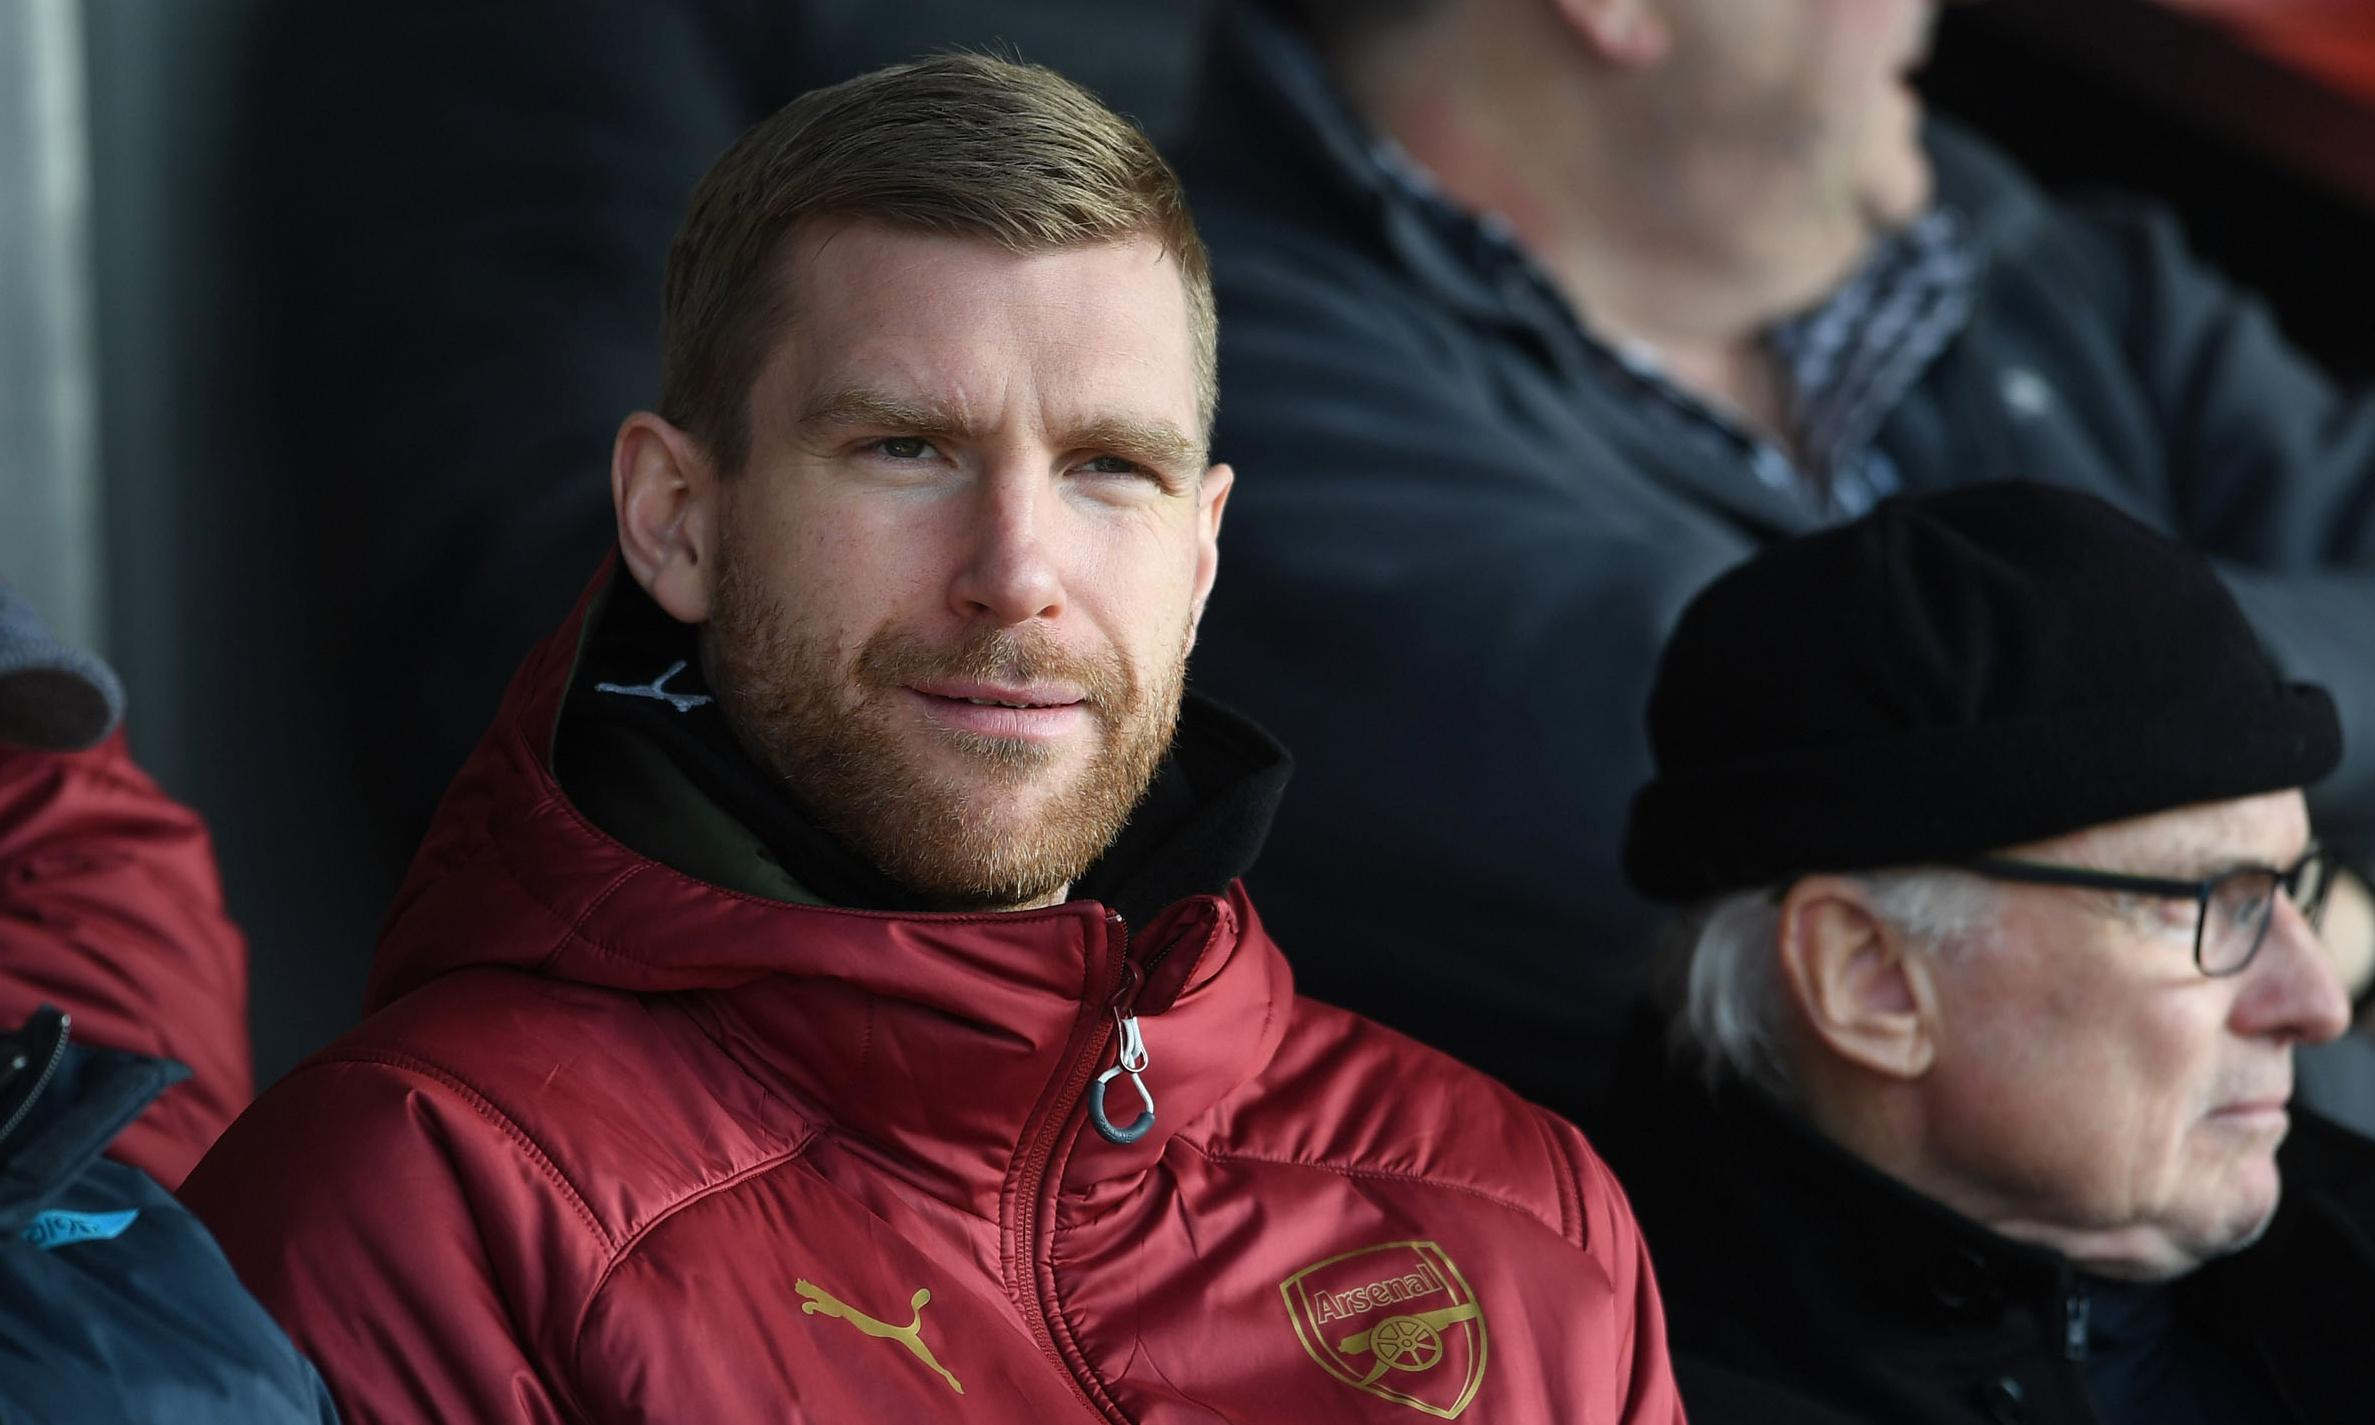 Per Mertesacker: 'I want to make an impact on young people's lives'